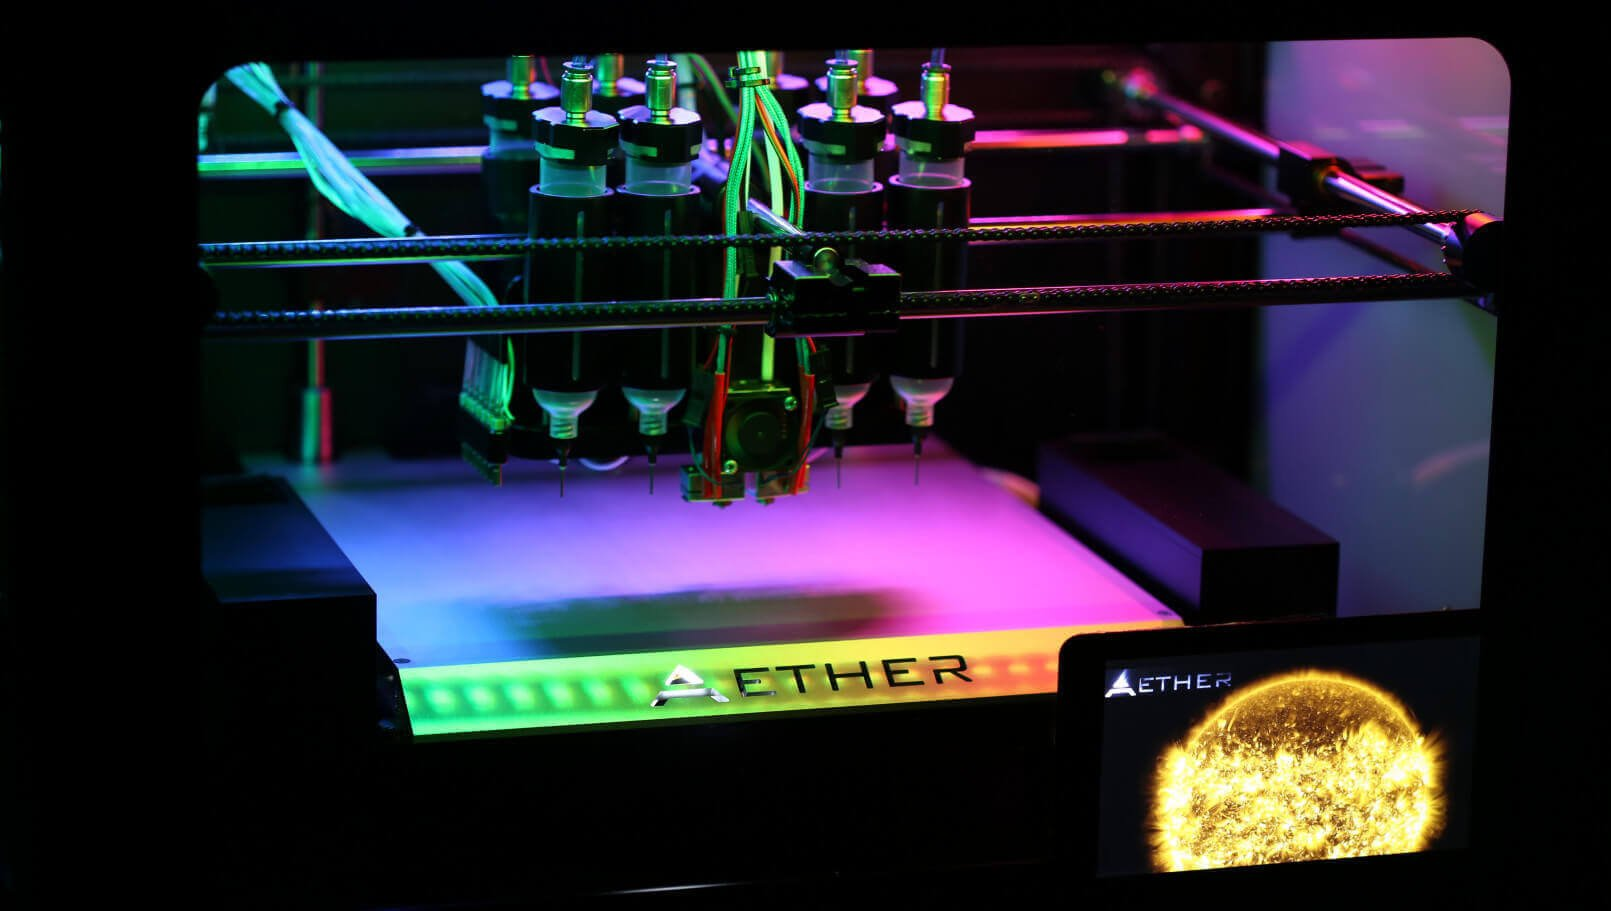 MIT and Aether Collaborate to Test New Biomaterials Using Aether 1 Bioprinter | All3DP